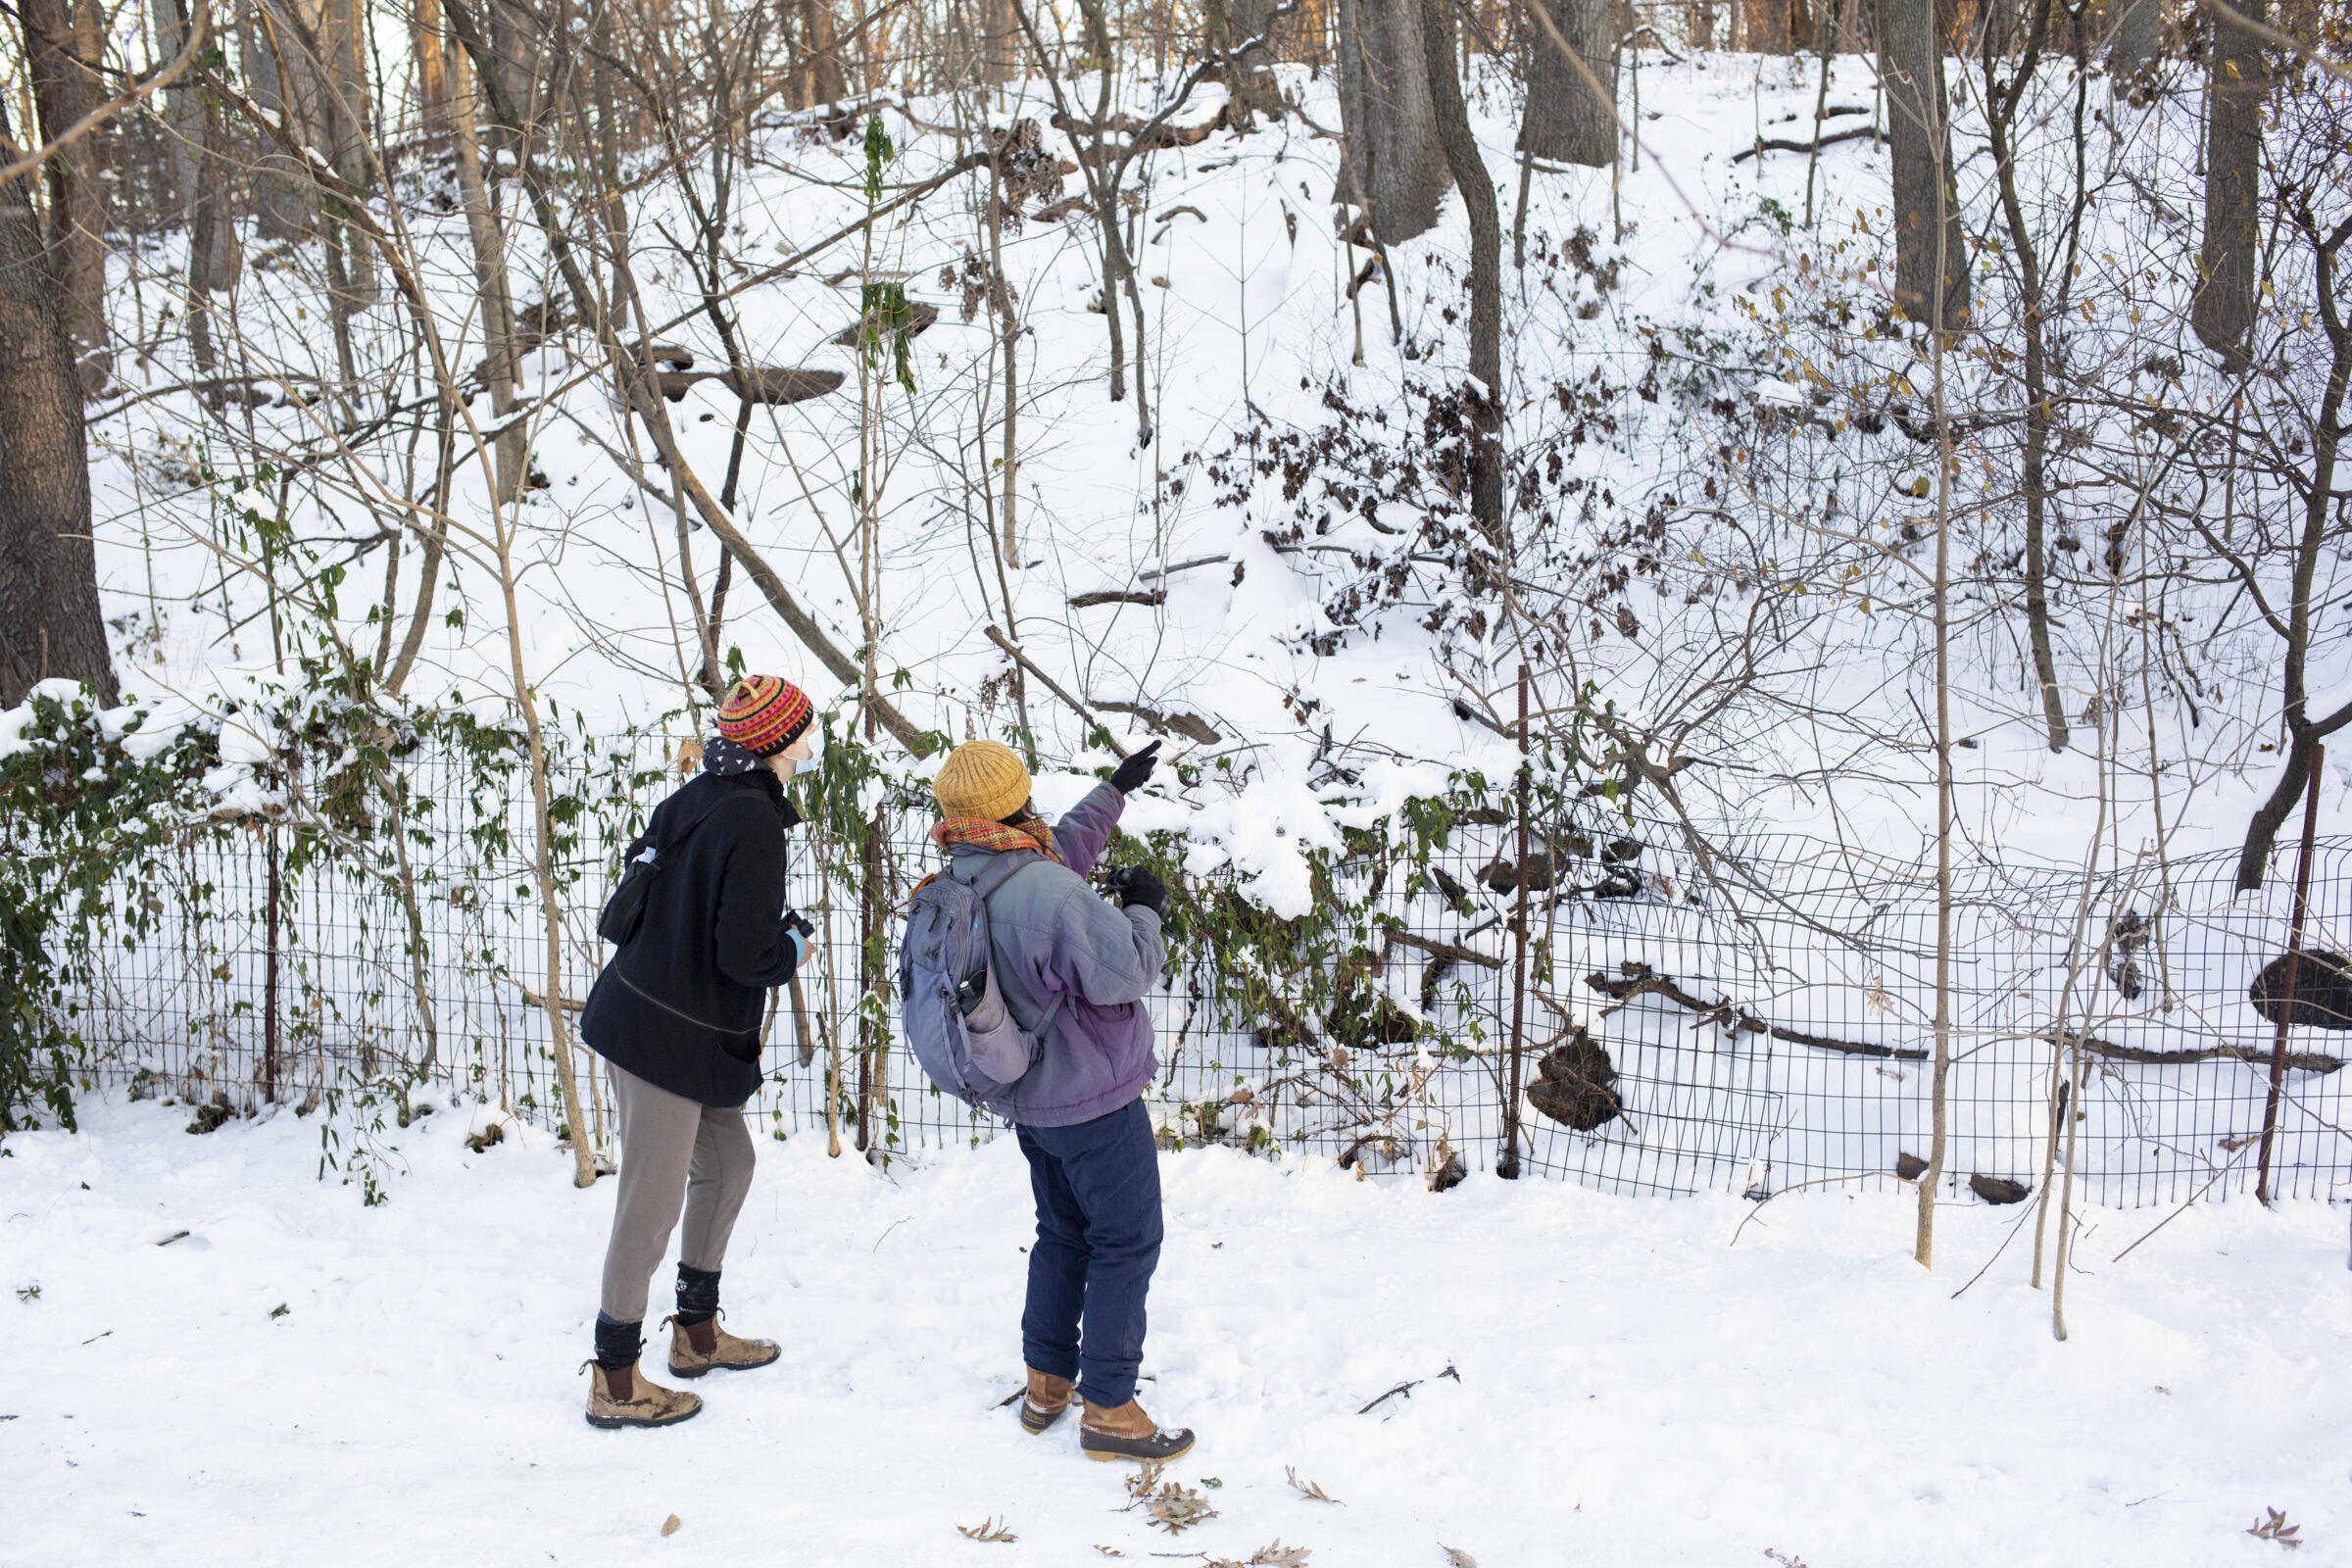 Volunteers from the Brooklyn Bird Club participate in the 121st Christmas Bird Count in Prospect Park, Brooklyn in December 2020. Luke Franke/Audubon